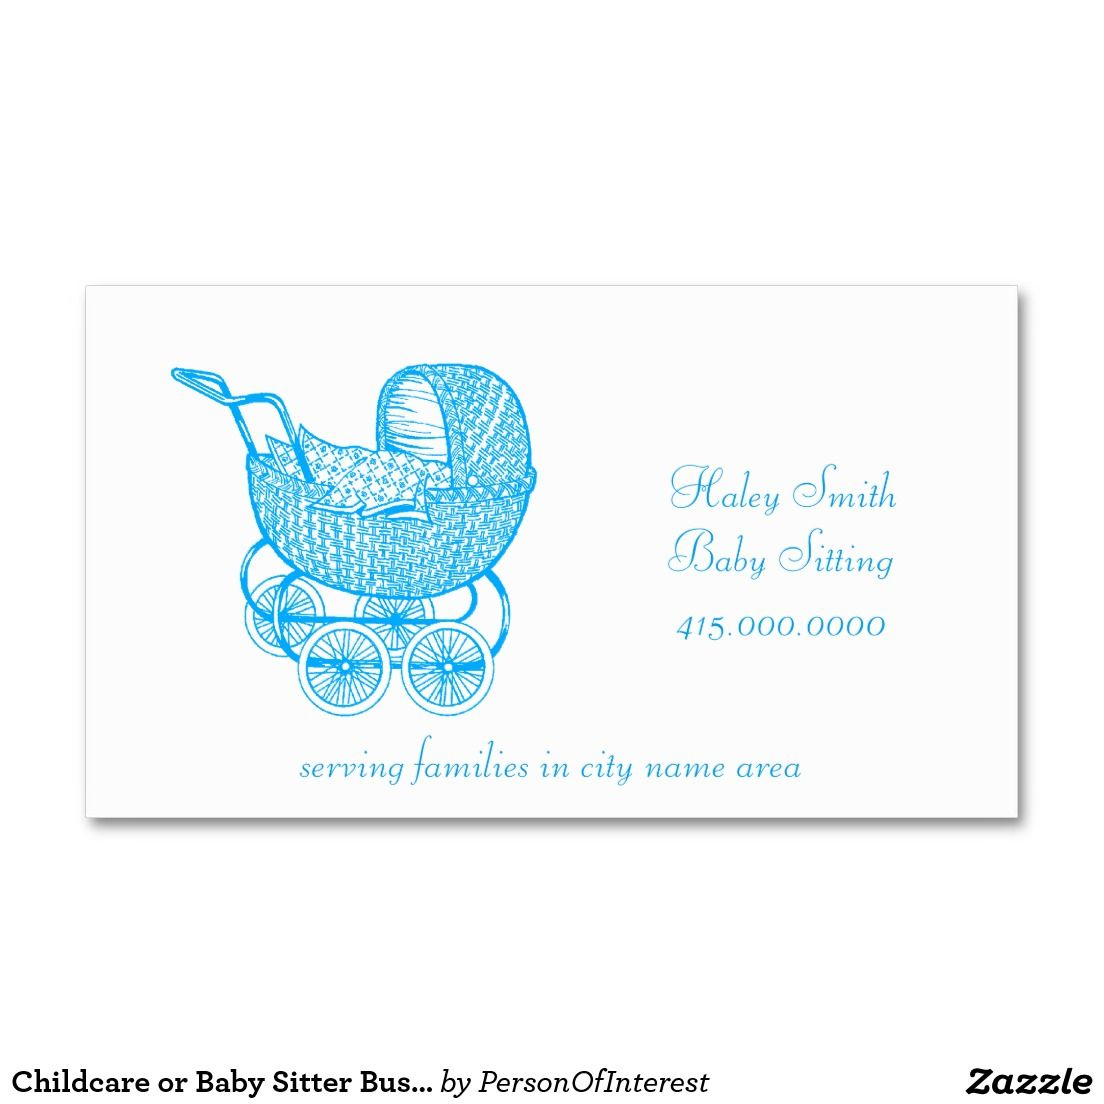 Childcare or baby sitter business cards business cards profile childcare or baby sitter business cards magicingreecefo Image collections